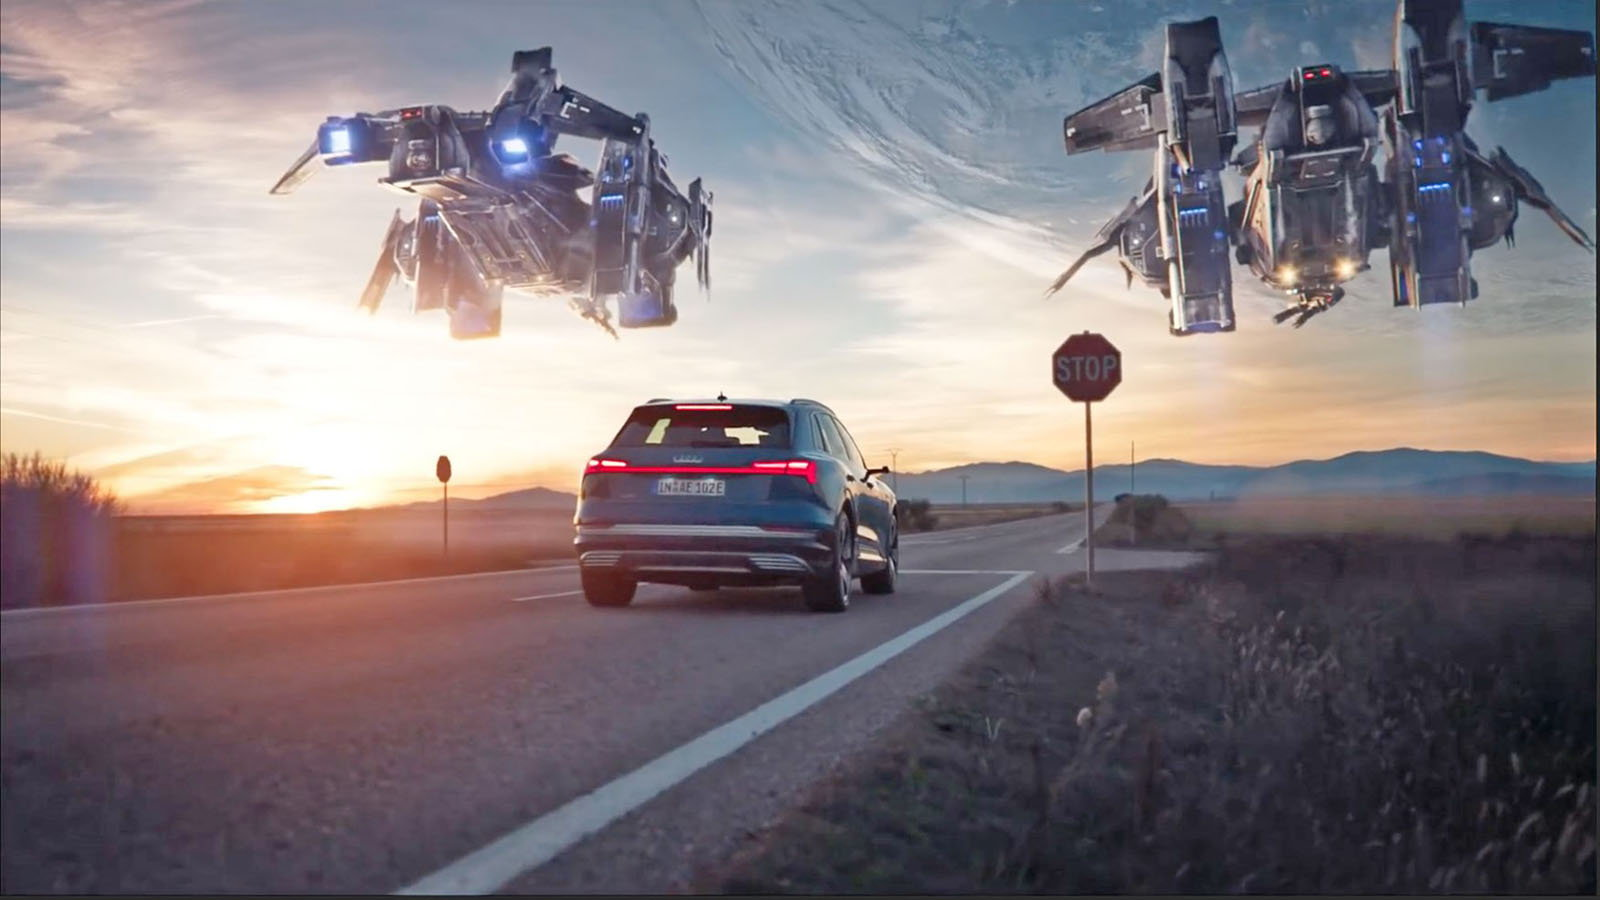 Audi Looks to Make Road Trips Very Interesting with VR